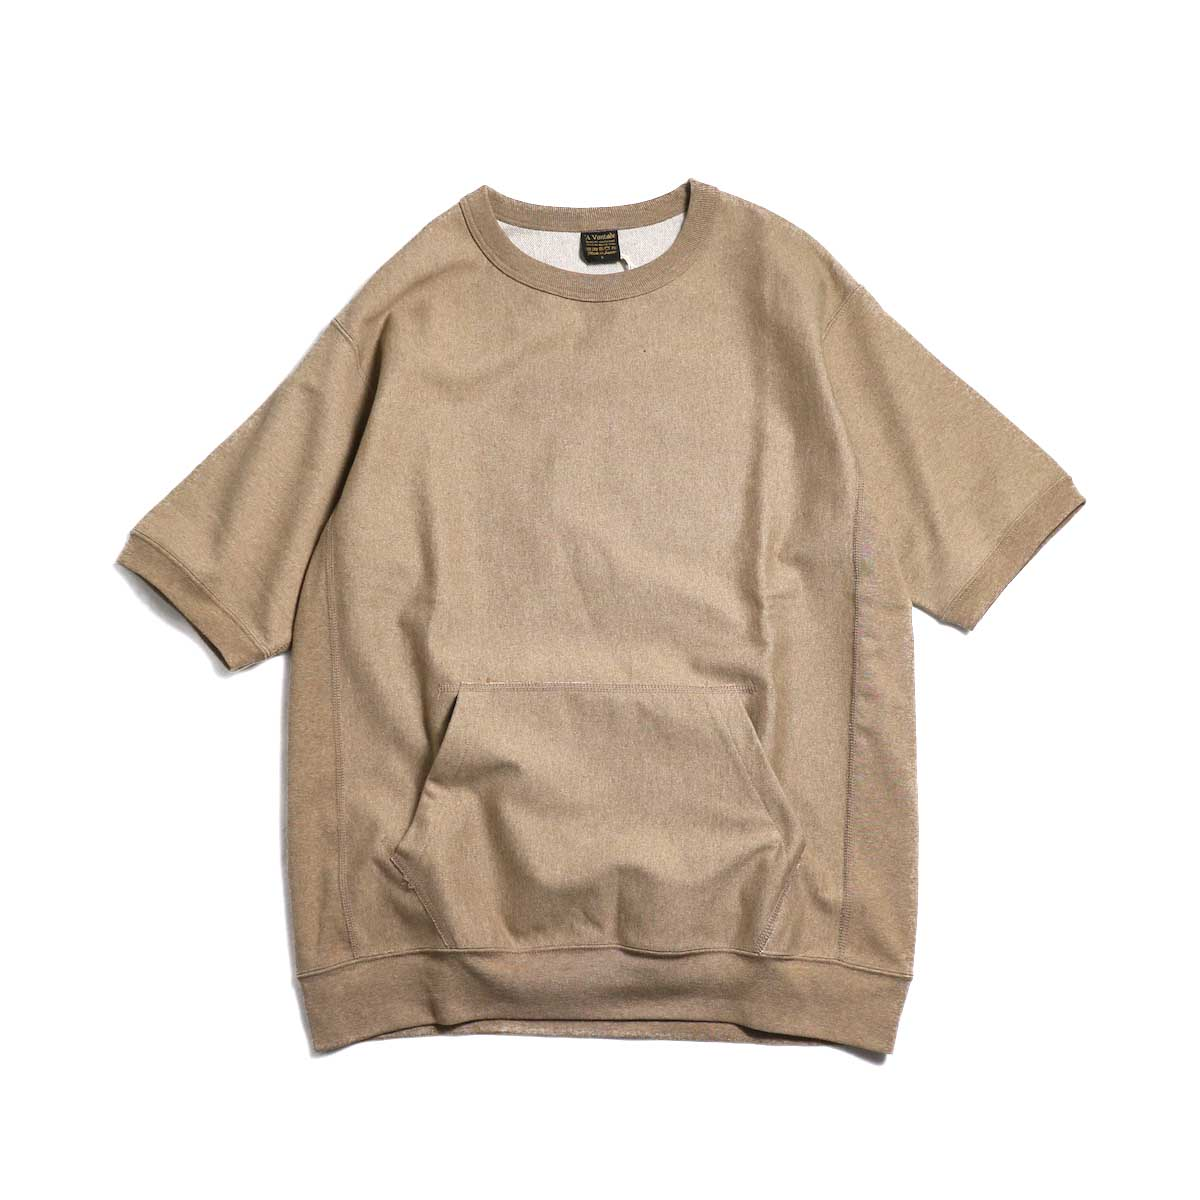 A VONTADE / Reverse Crew Top S/S -Amber Mix 正面